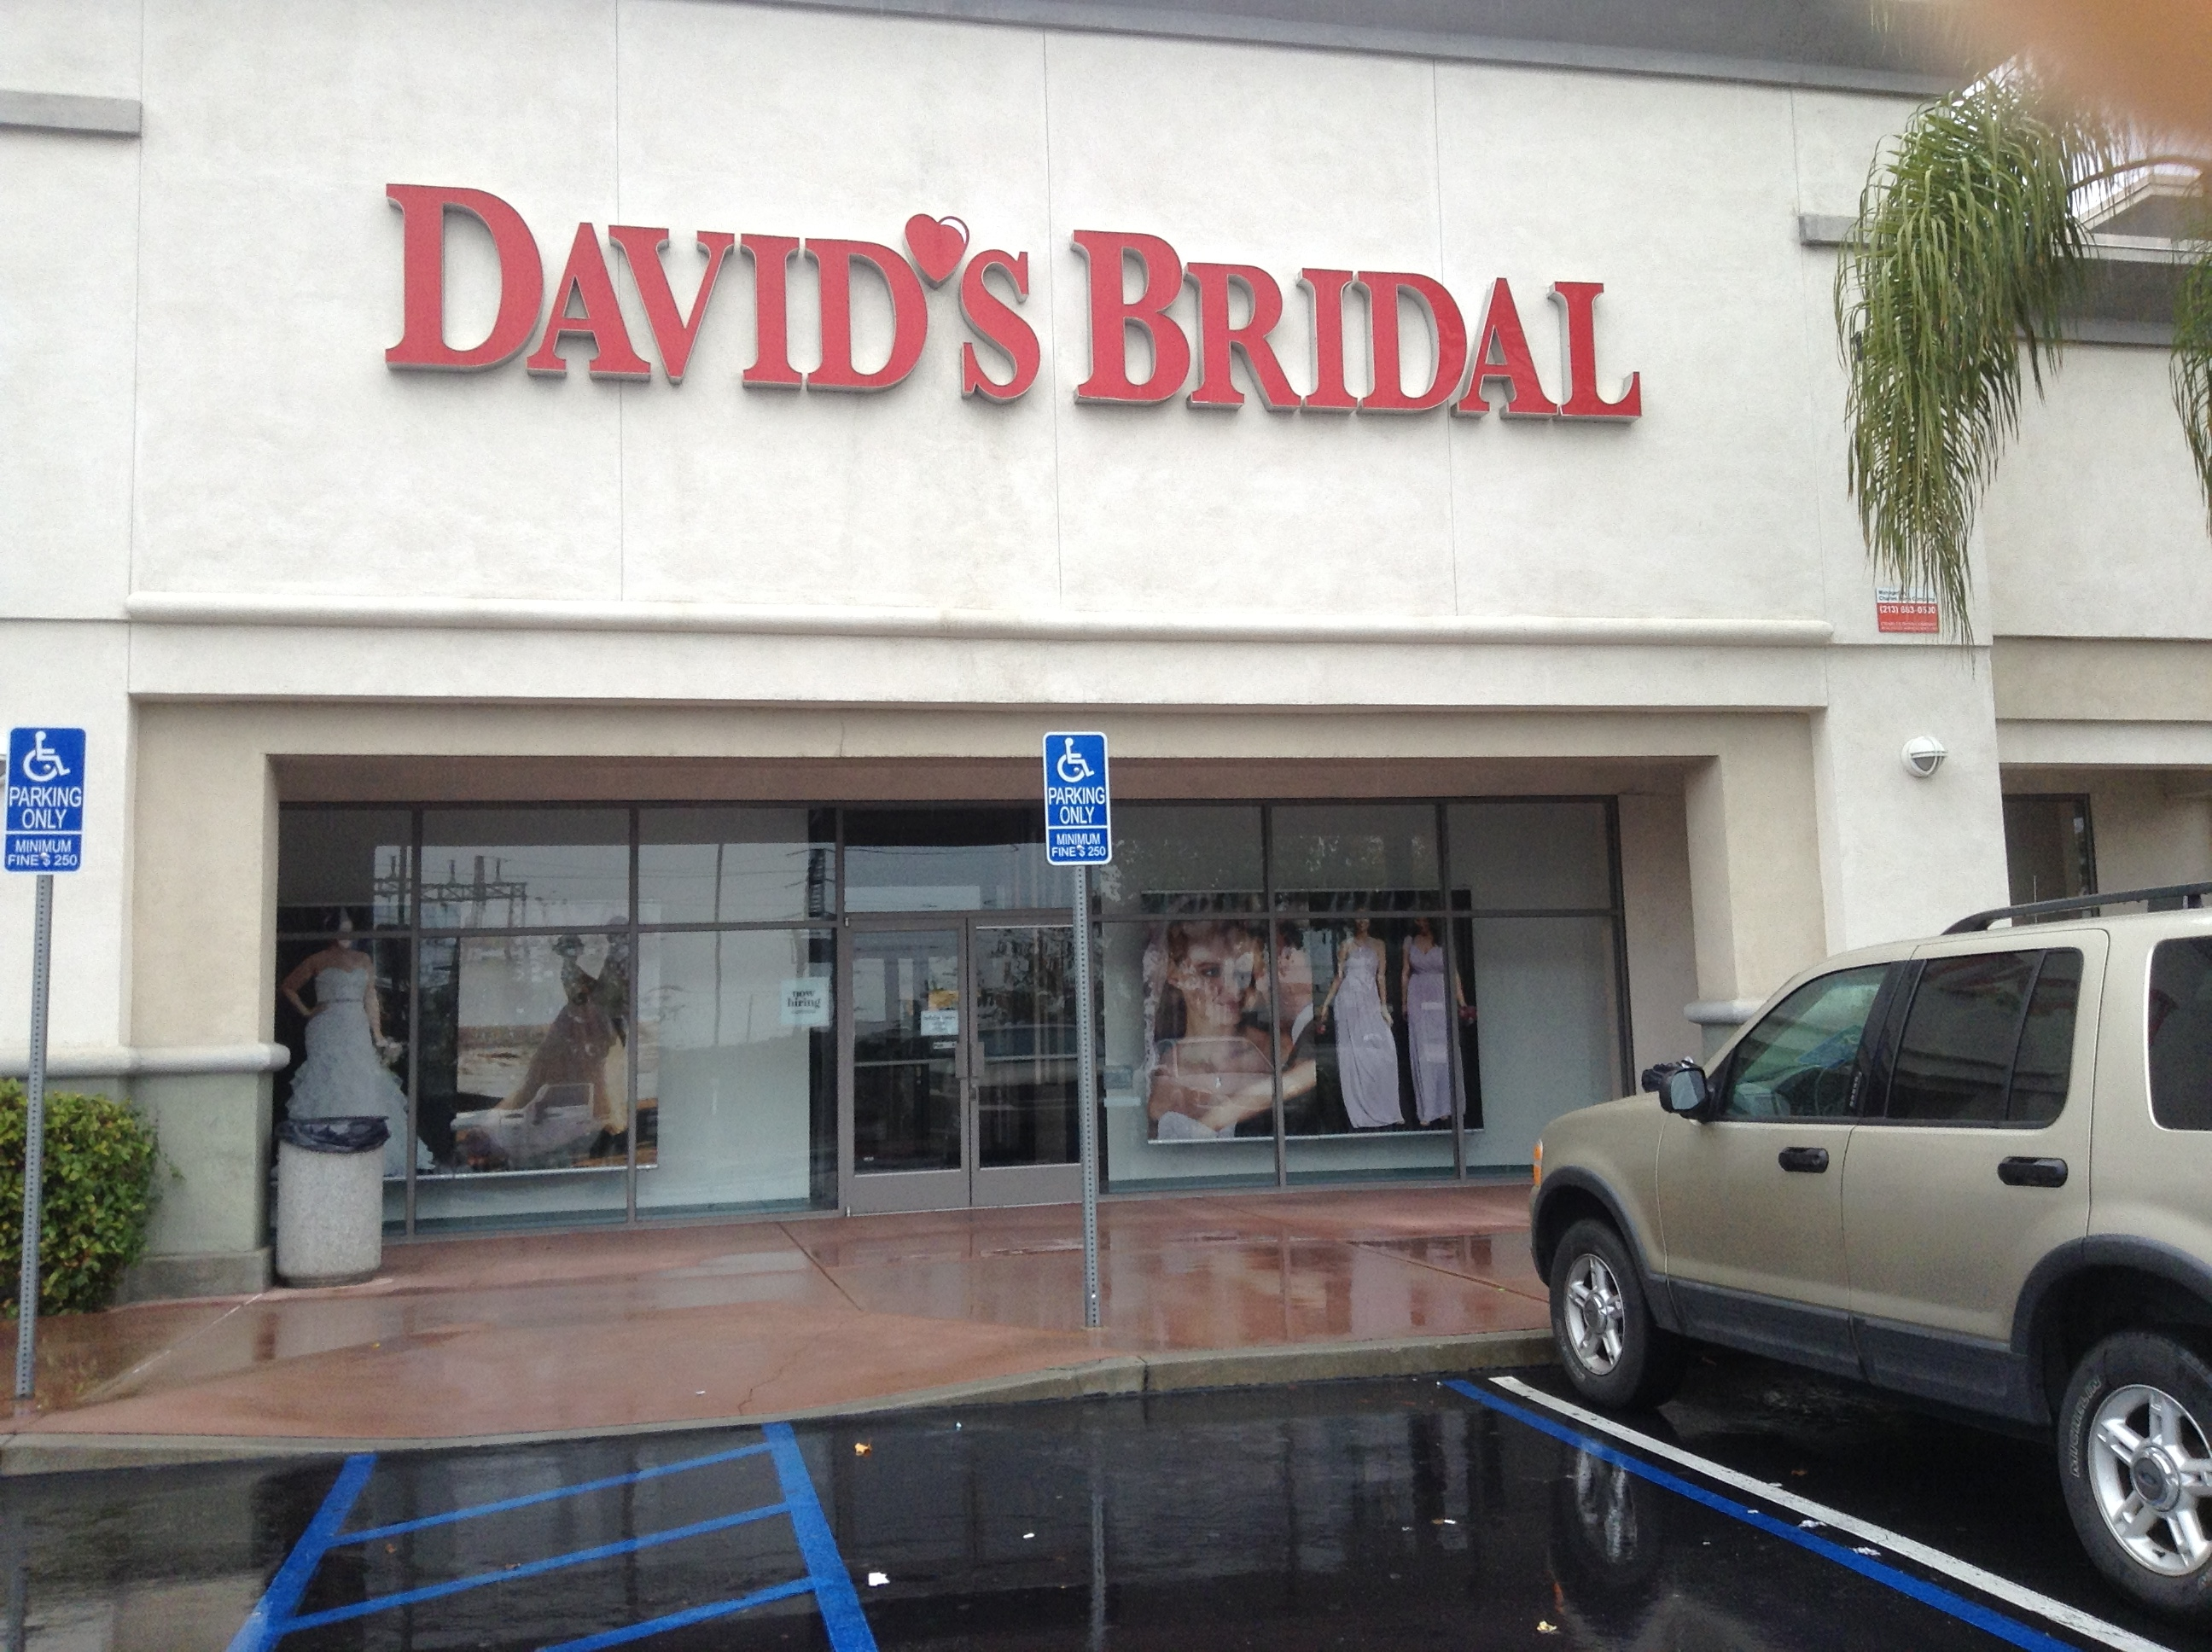 David's Bridal Regular Business Hours. Weekdays: The majority of the stores are open Monday through Friday 11am to 9pm, local time. Contact your local store for specific hours of operation. The store hours vary by location. Weekends: The store hours will vary by location. The majority of the stores are open Saturday 9am to 7pm and Sunday 11amto 7pm, local time.